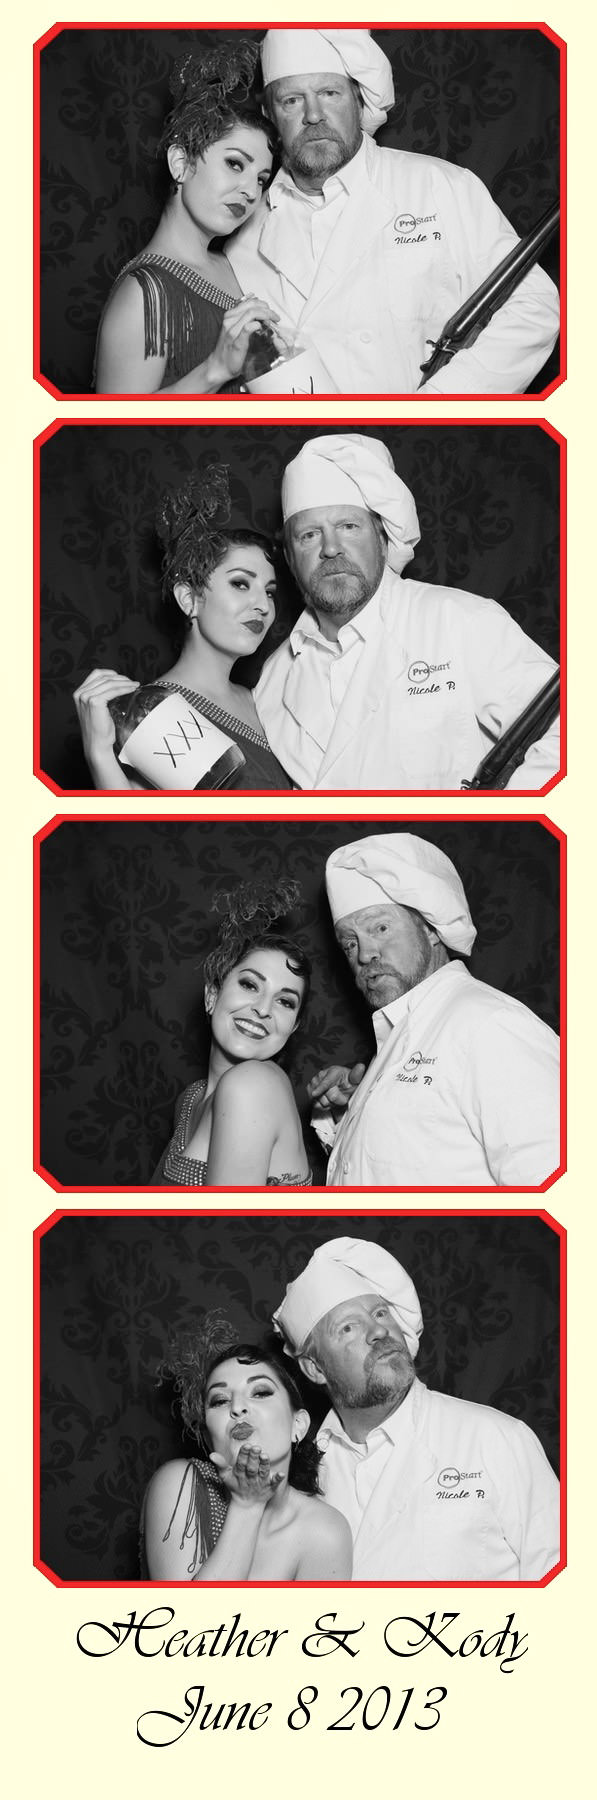 Best-darn-photobooth-rental-in-Colorado